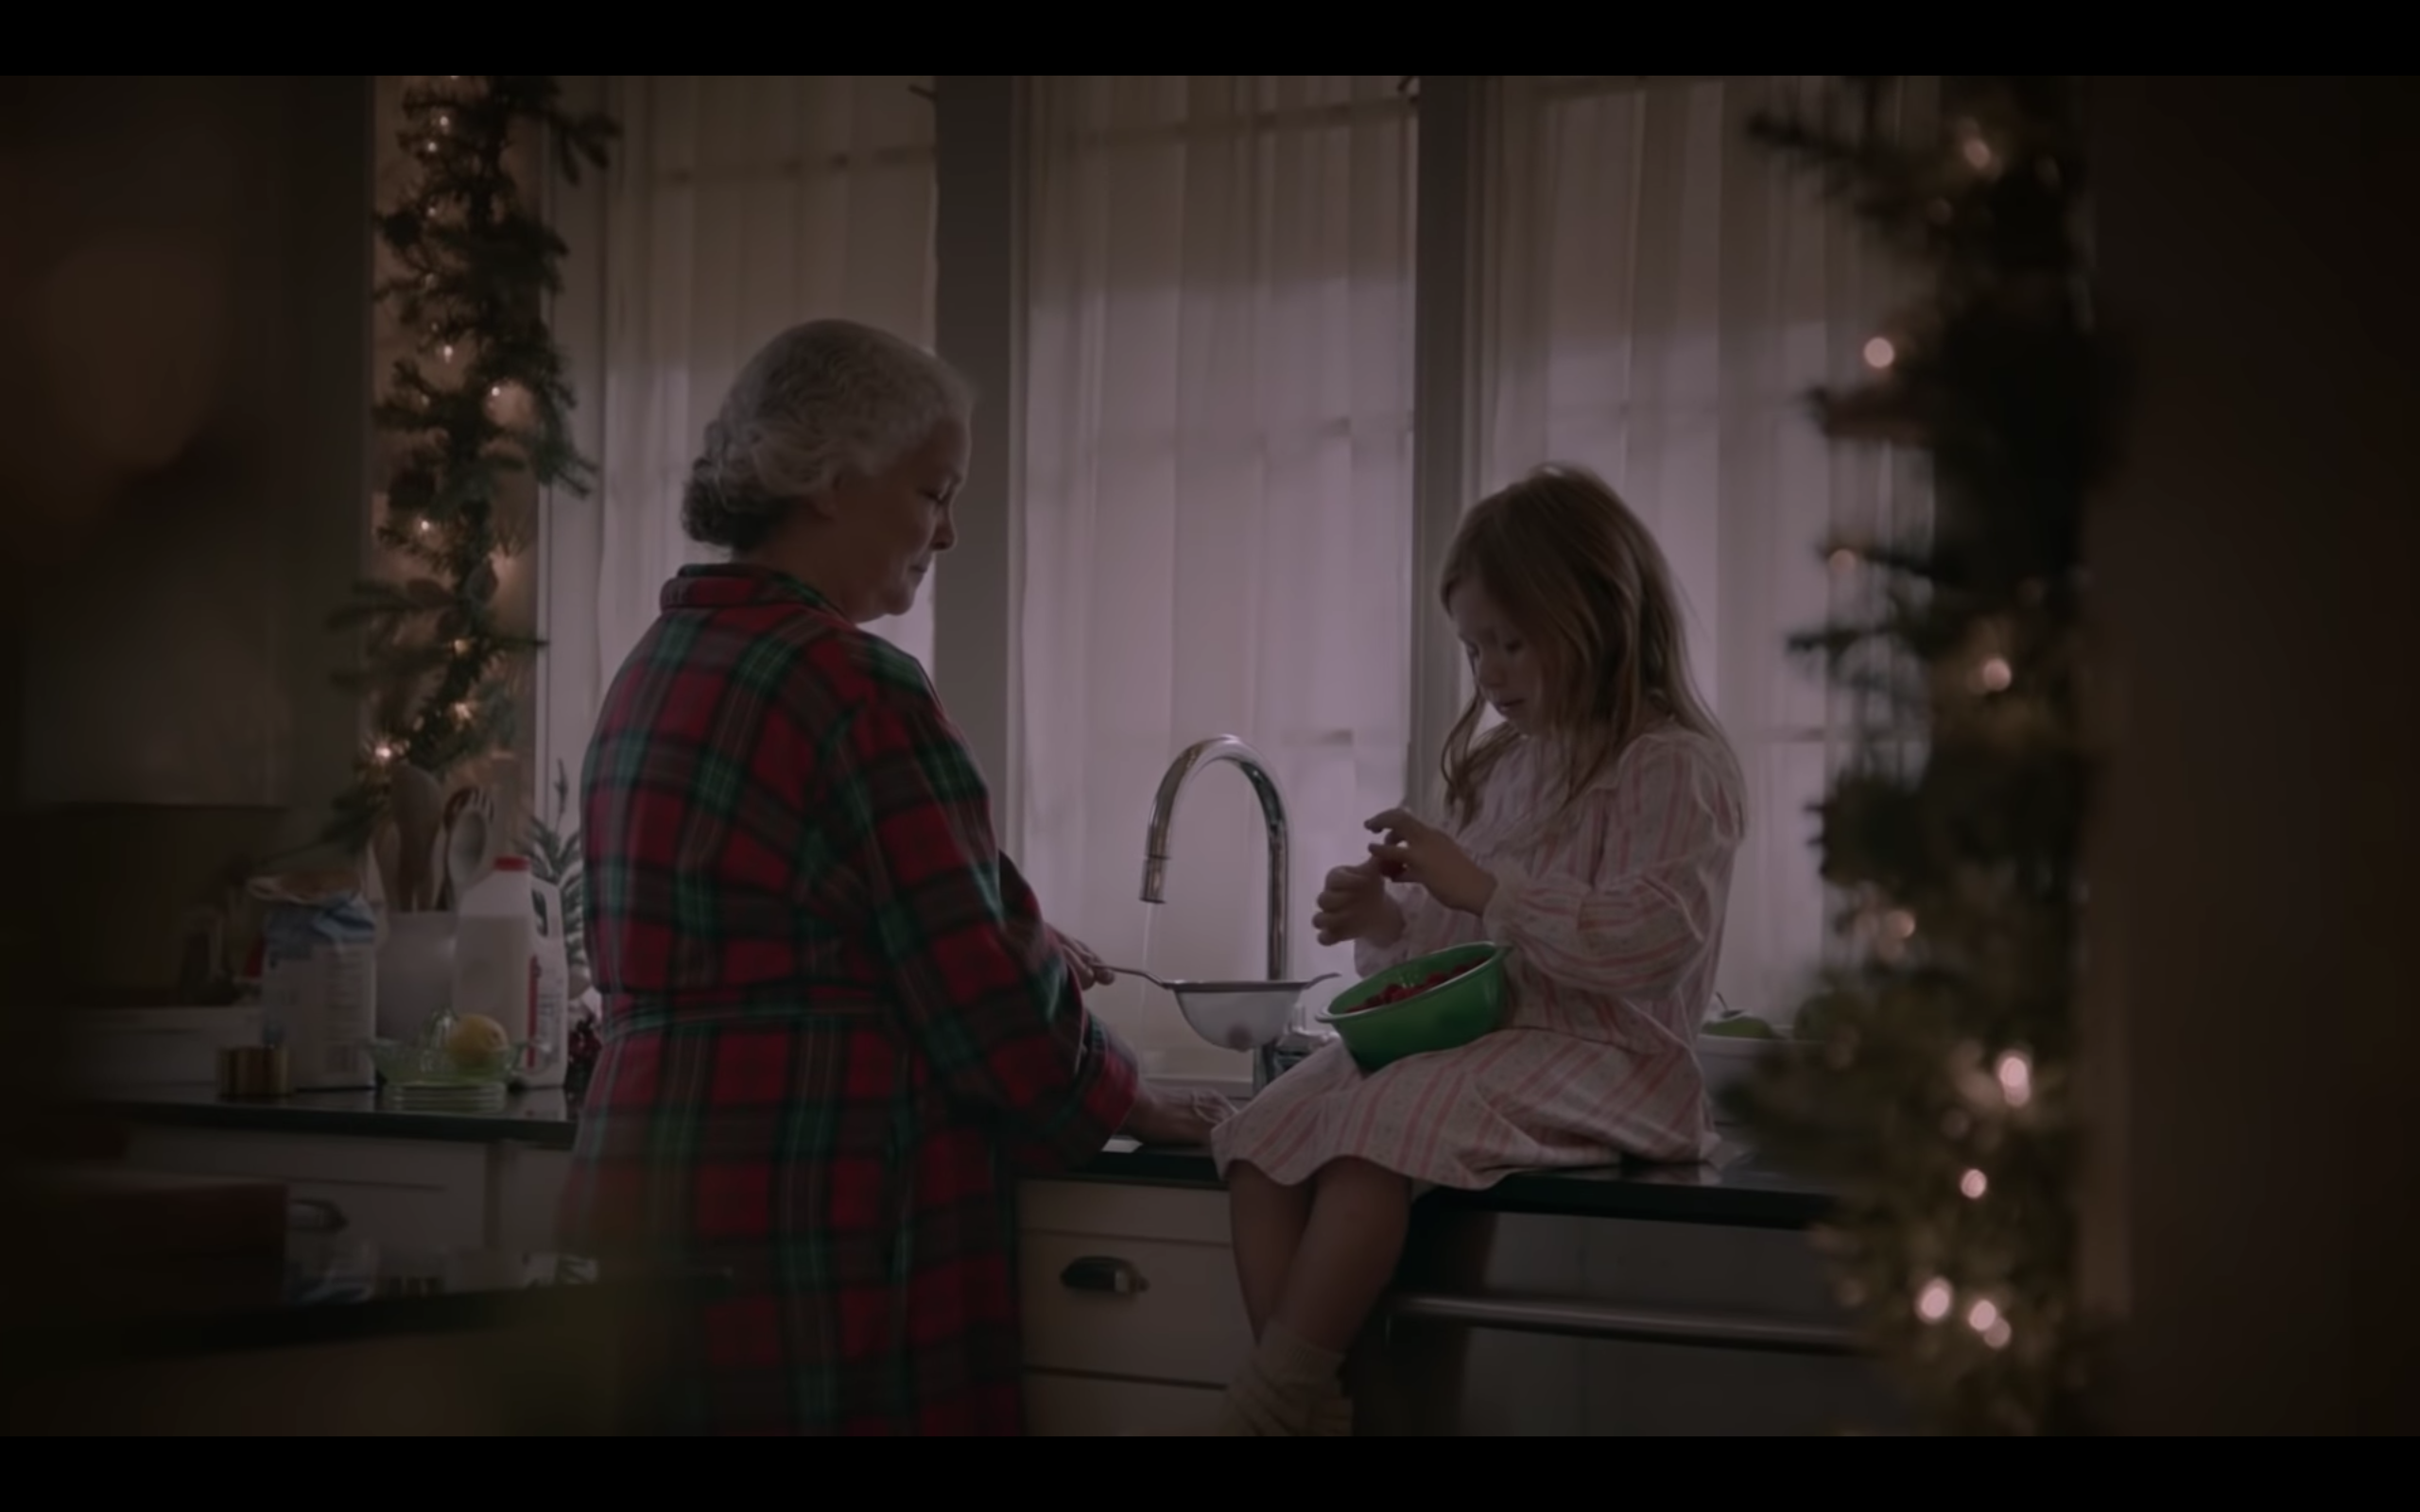 Grandma and granddaughter on Christmas morning in kitchen